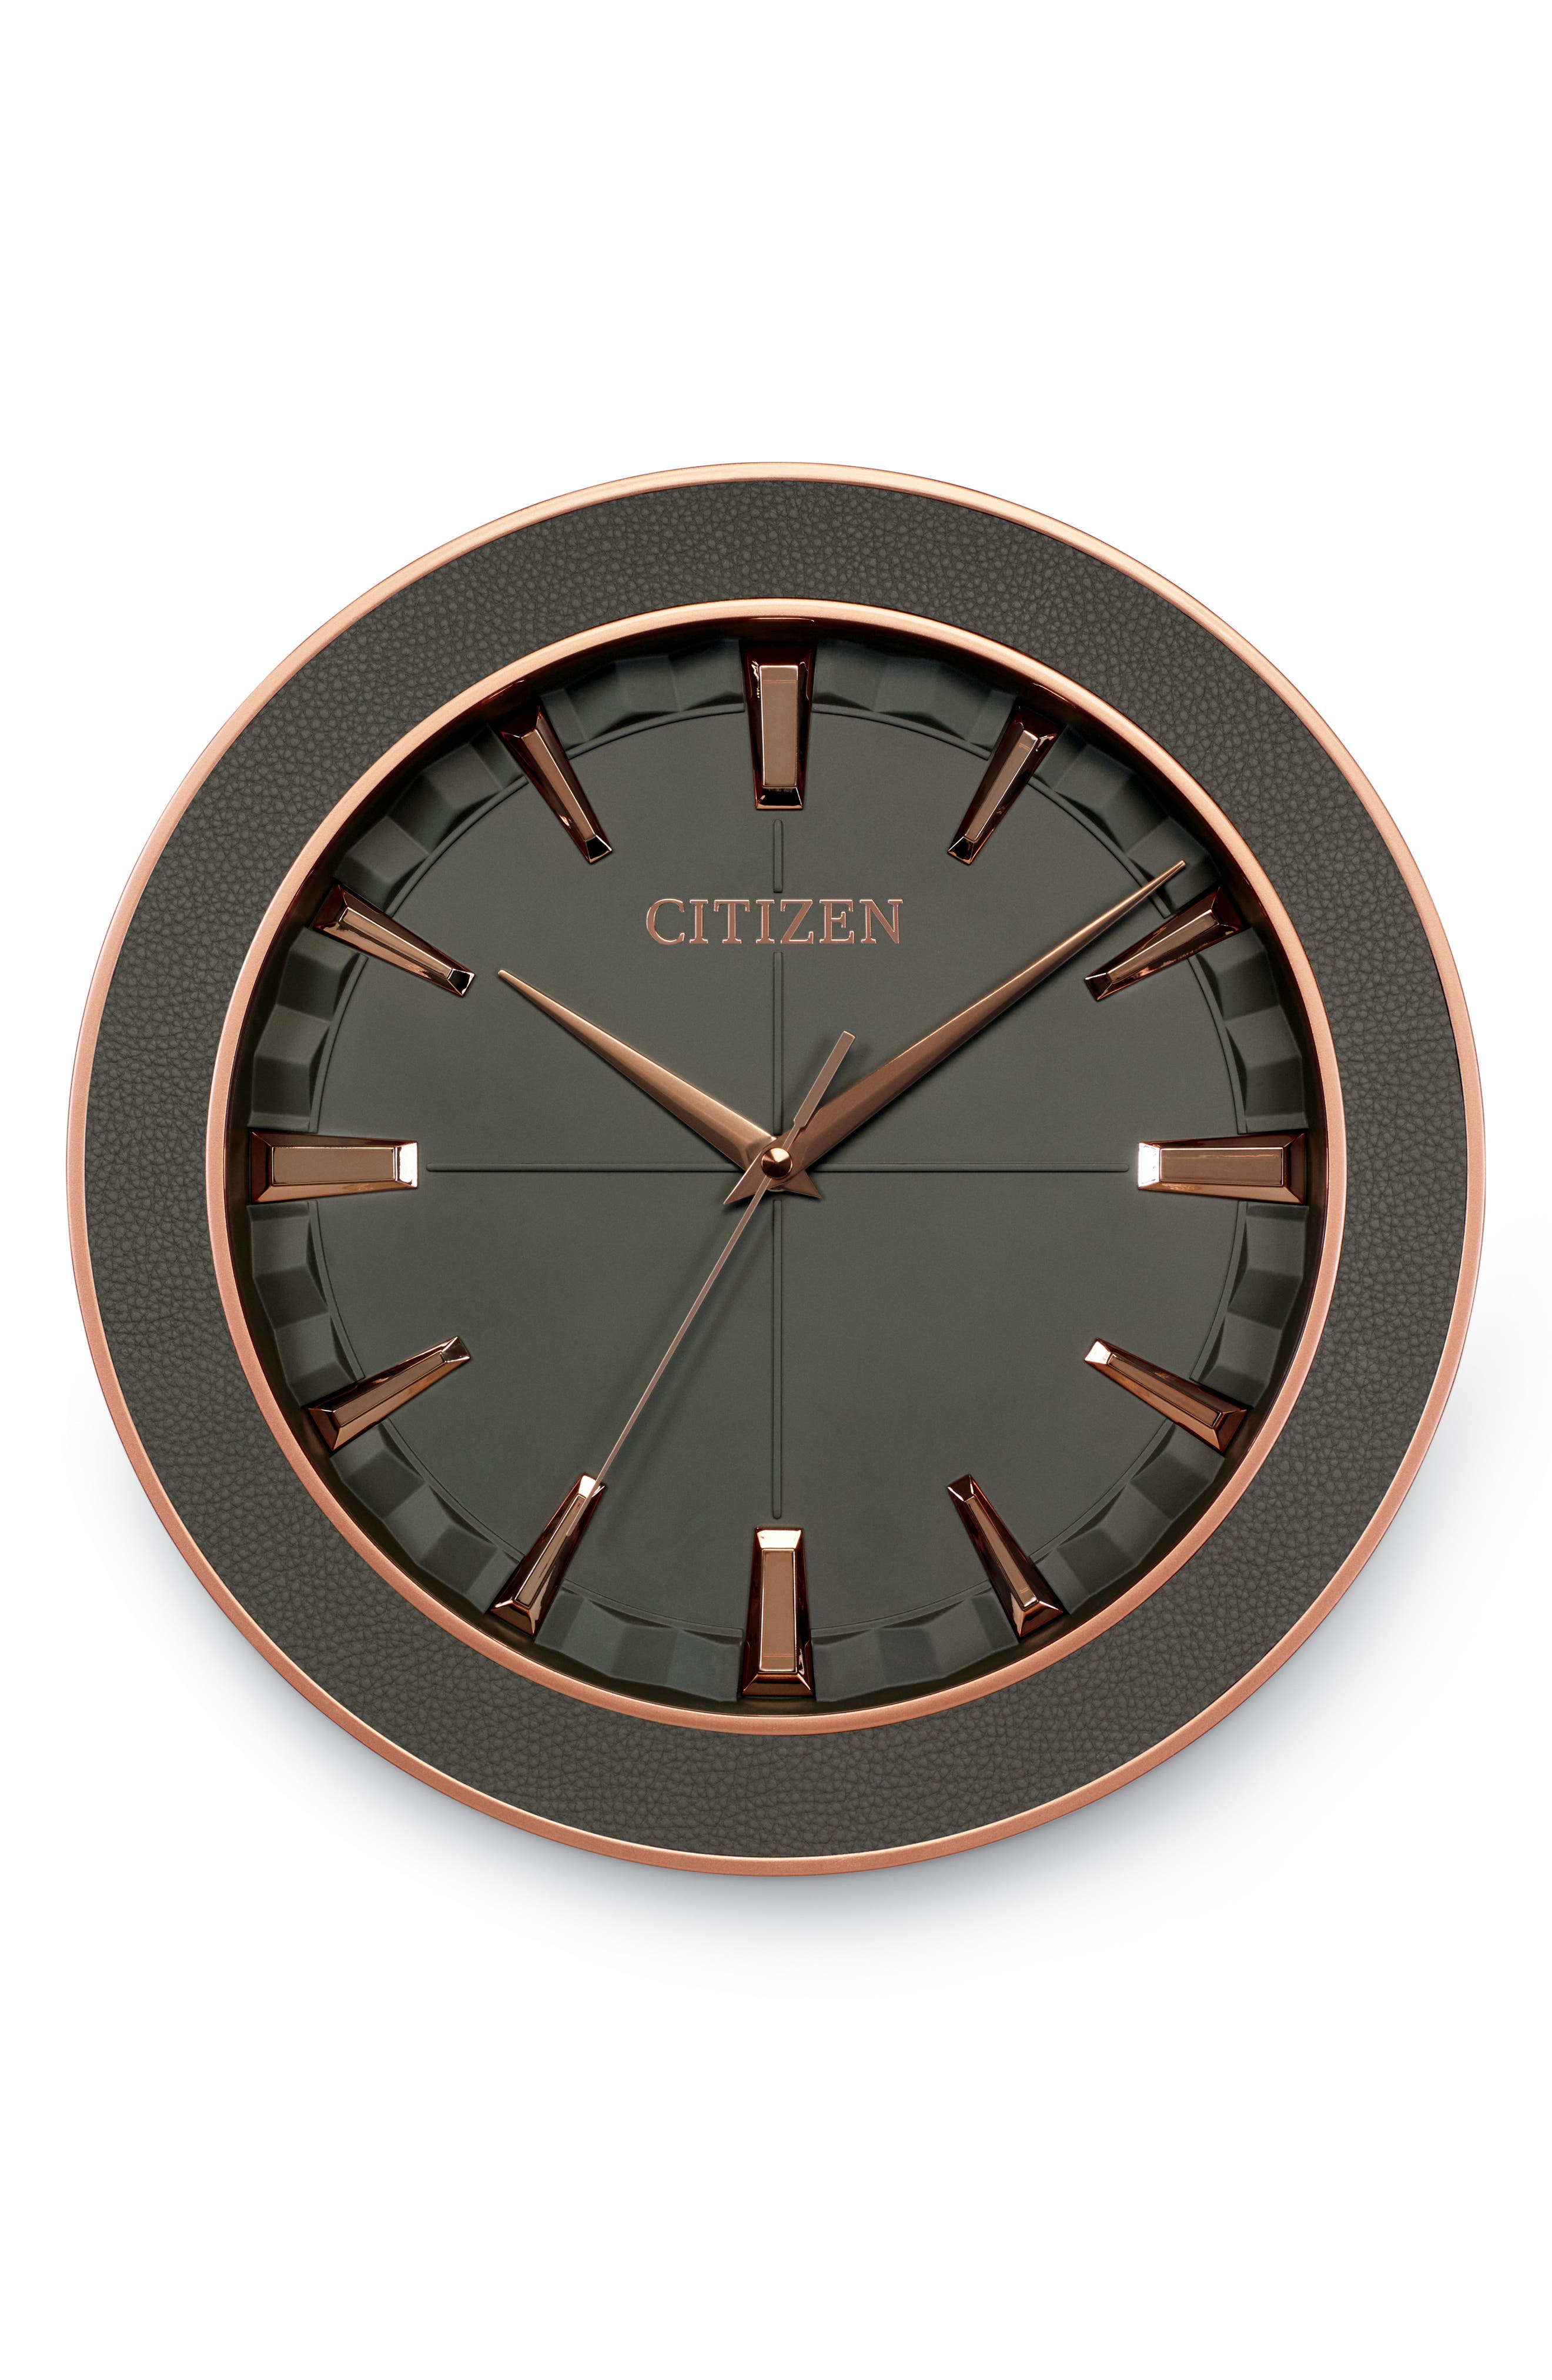 Leather Gallery Wall Clock,                             Main thumbnail 1, color,                             GREY